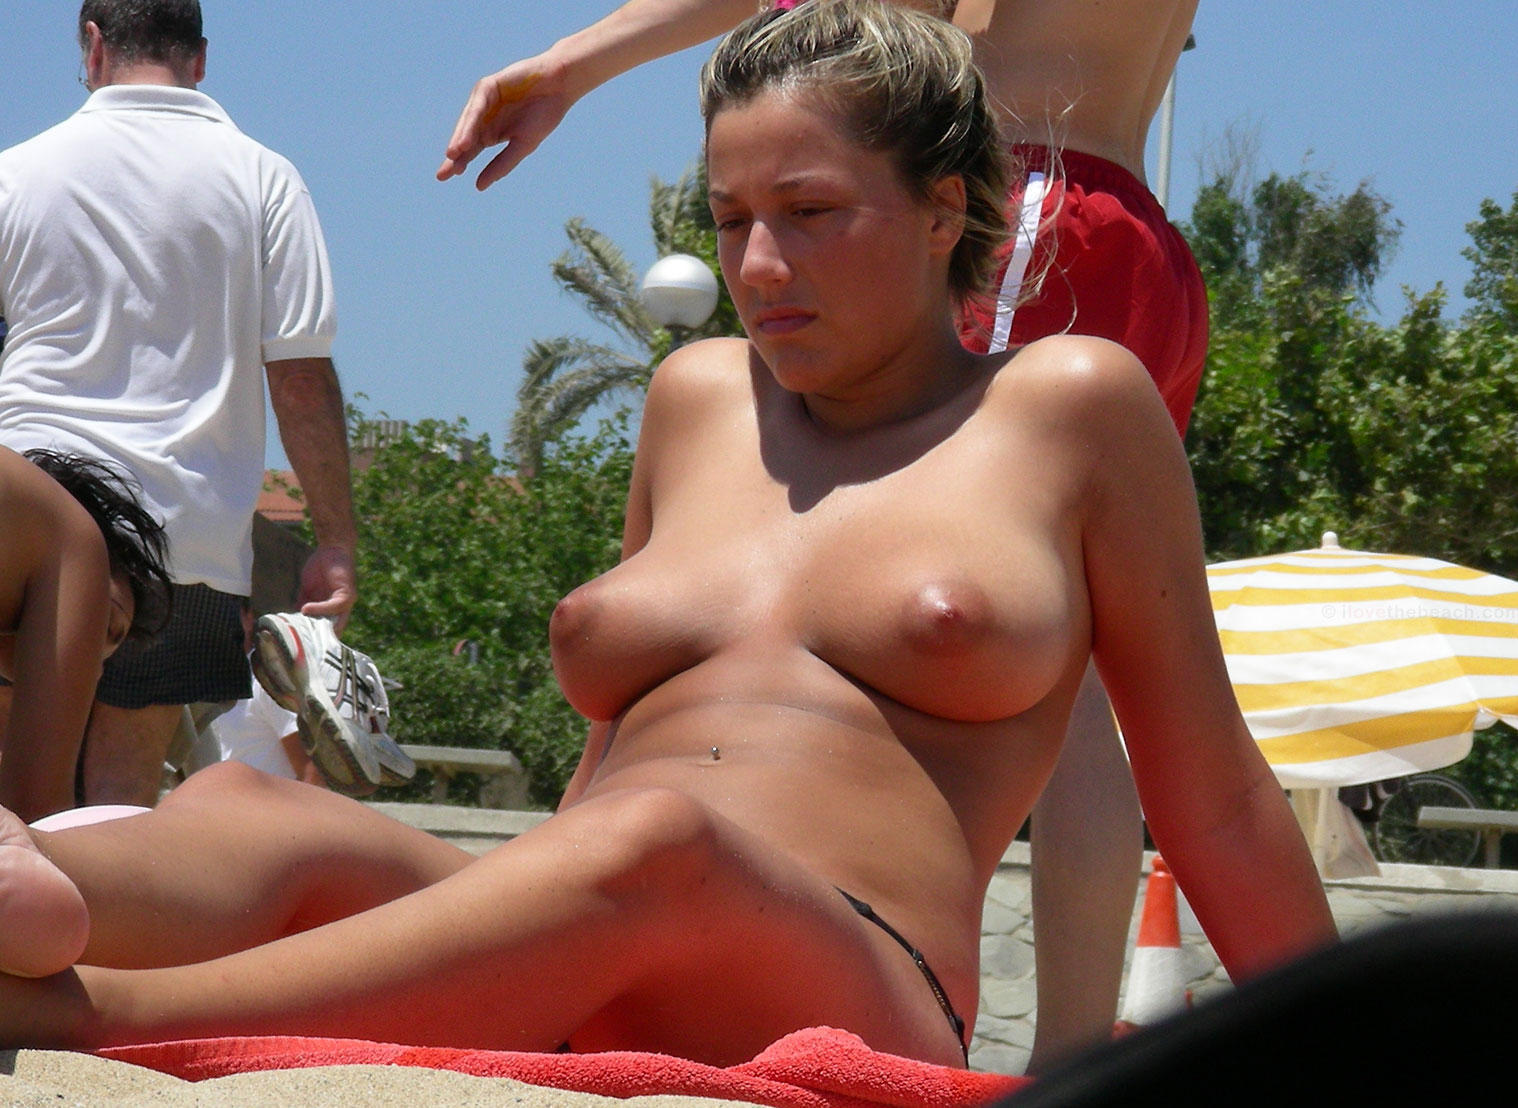 Topless beauty tanning and showing her round boobs